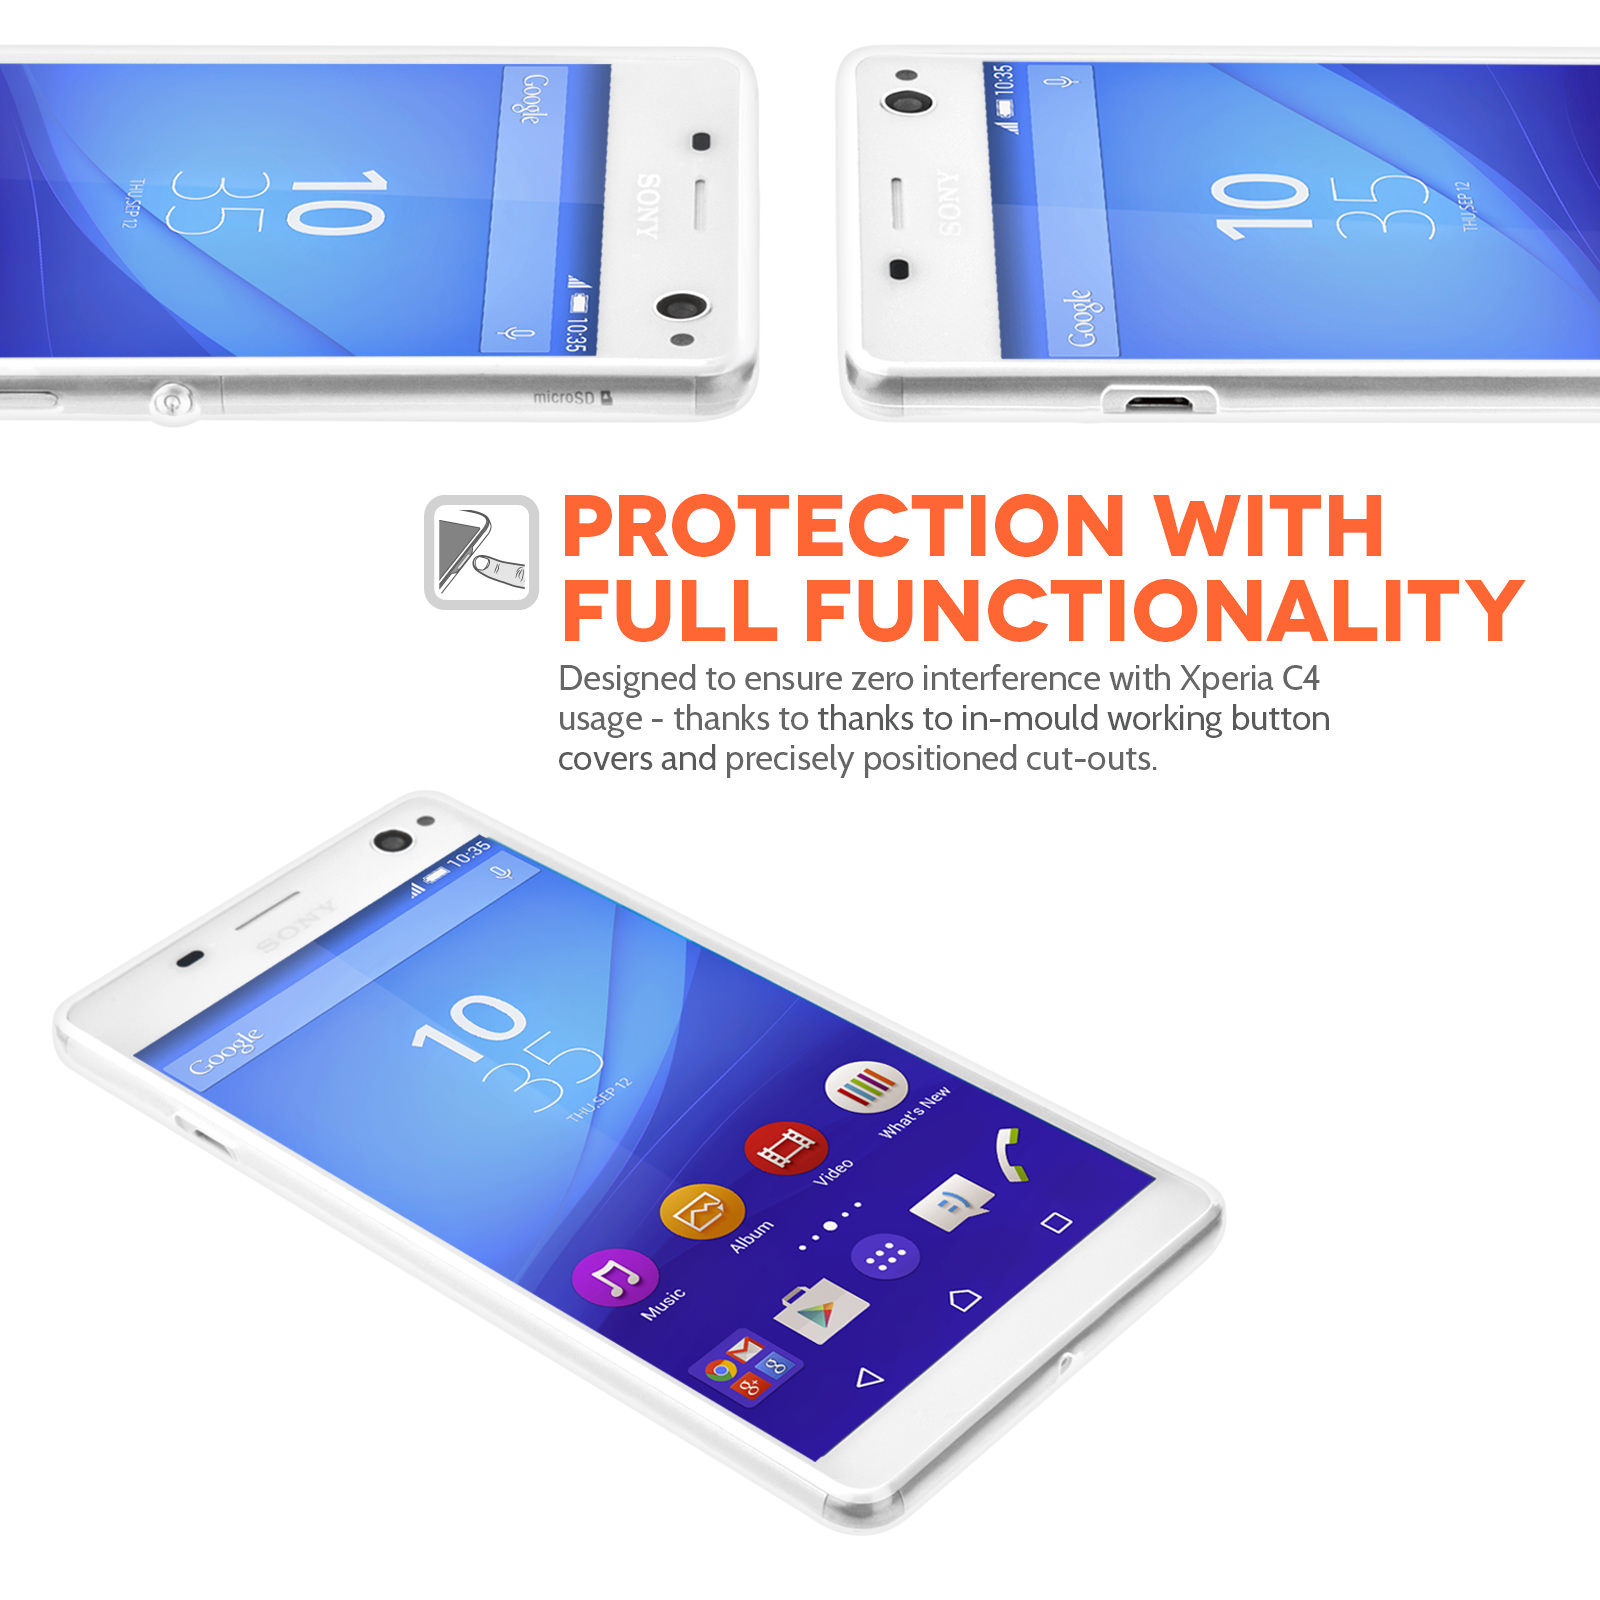 Yousave Accessories Sony Xperia C4 06mm Clear Gel Case C 4